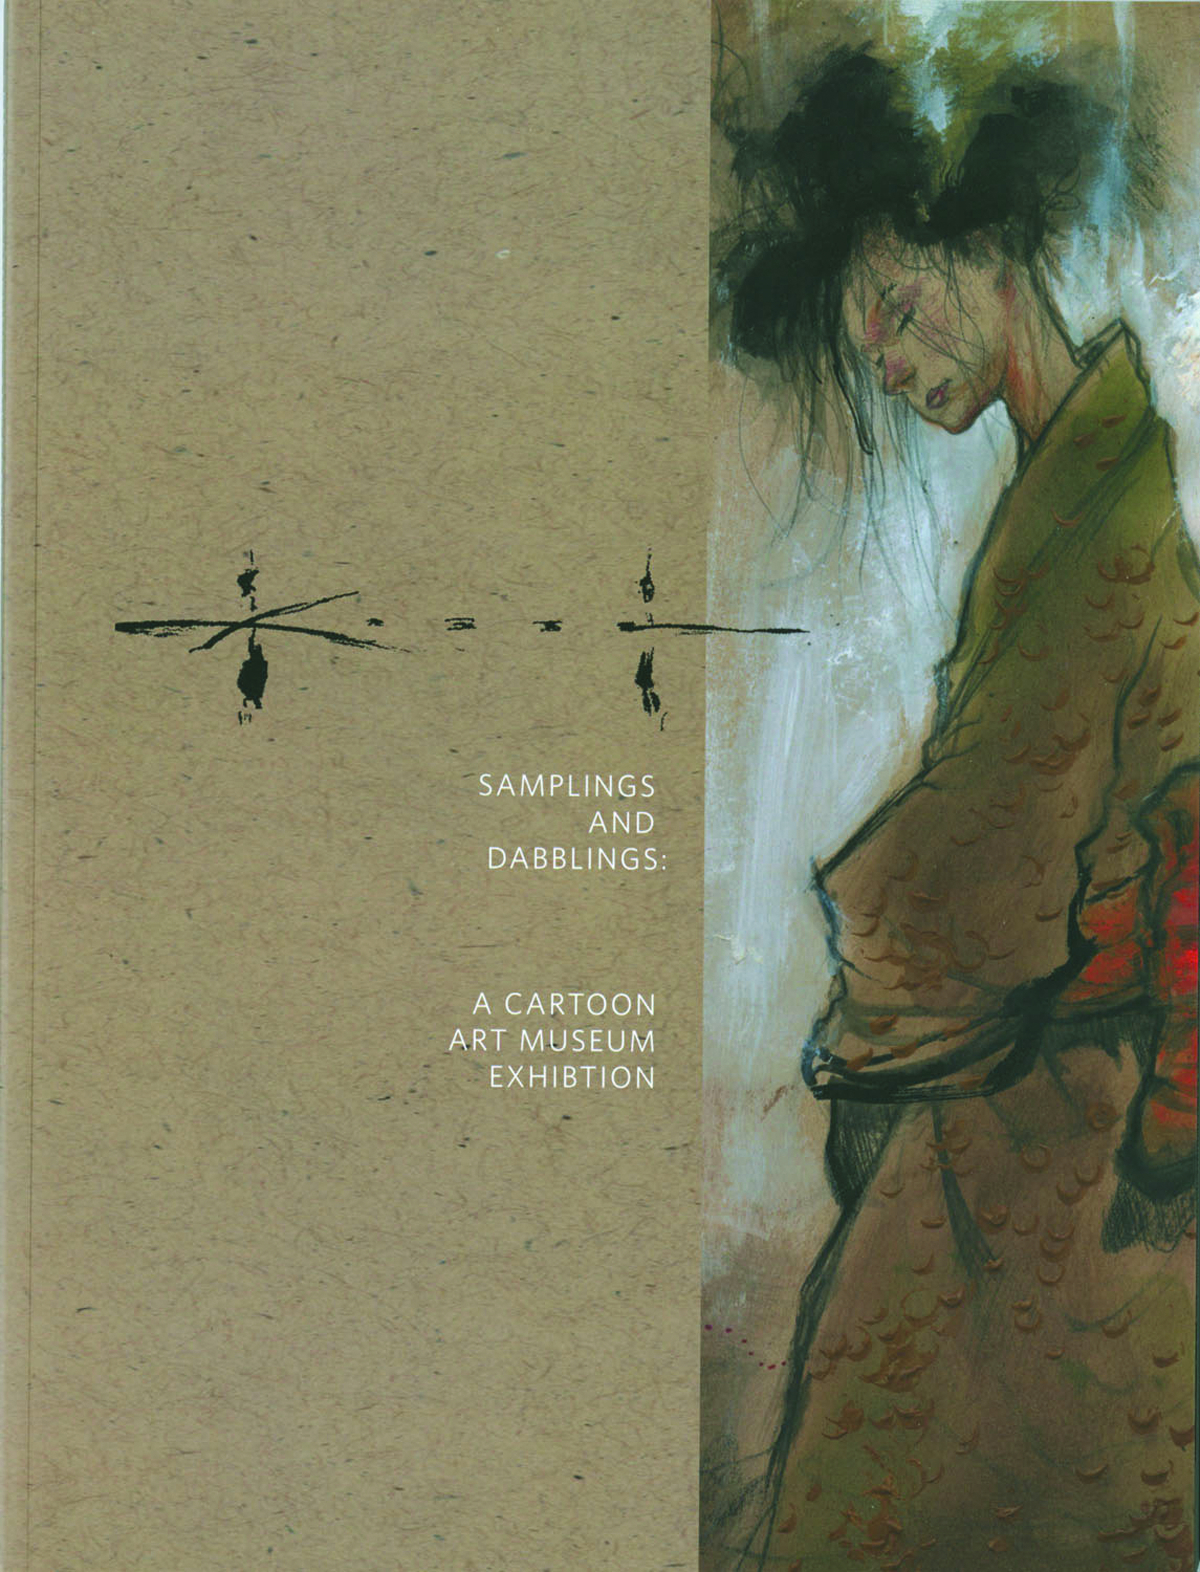 SAM KIETH SAMPLINGS & DABBLINGS SC